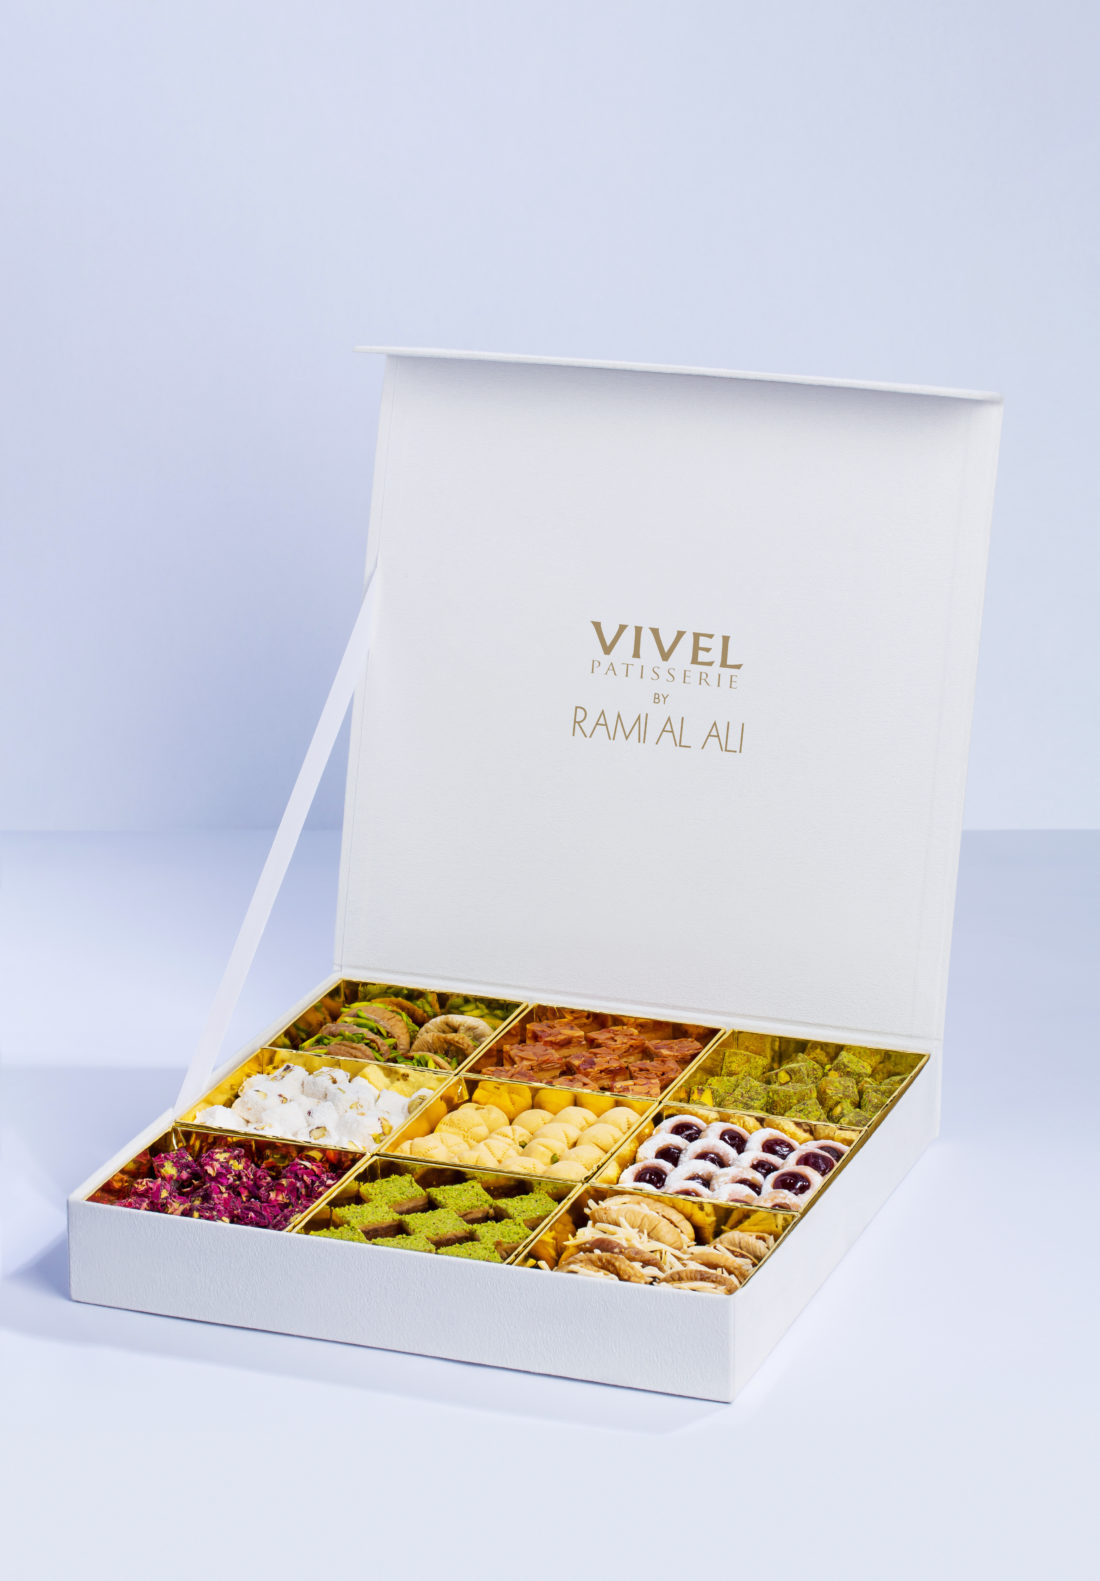 Rami-al-ali-vivel-patisserie-the-luxe-diary-luxe-list